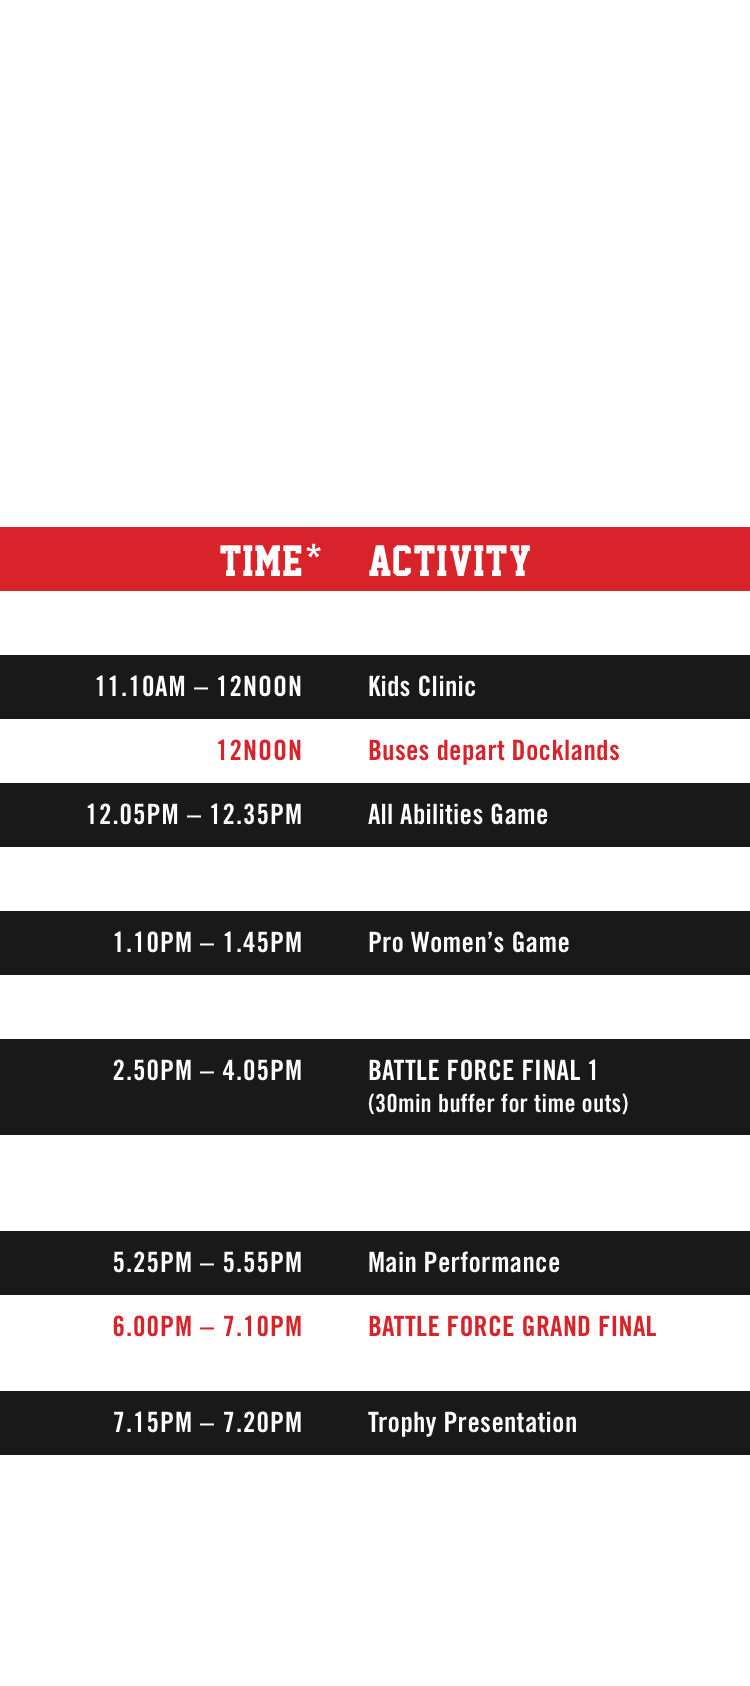 Nike_BF-schedule_png.png